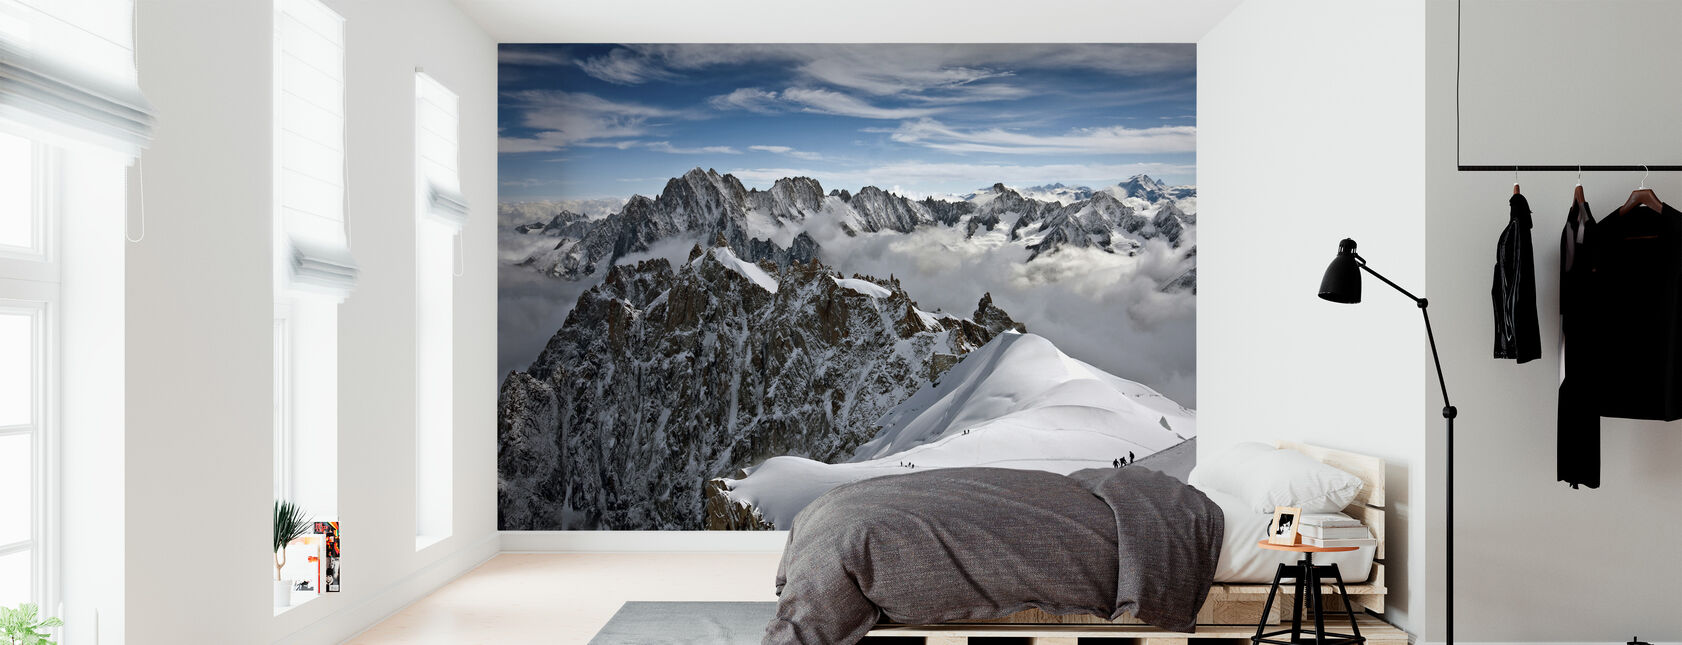 View of overlooking Alps - Wallpaper - Bedroom